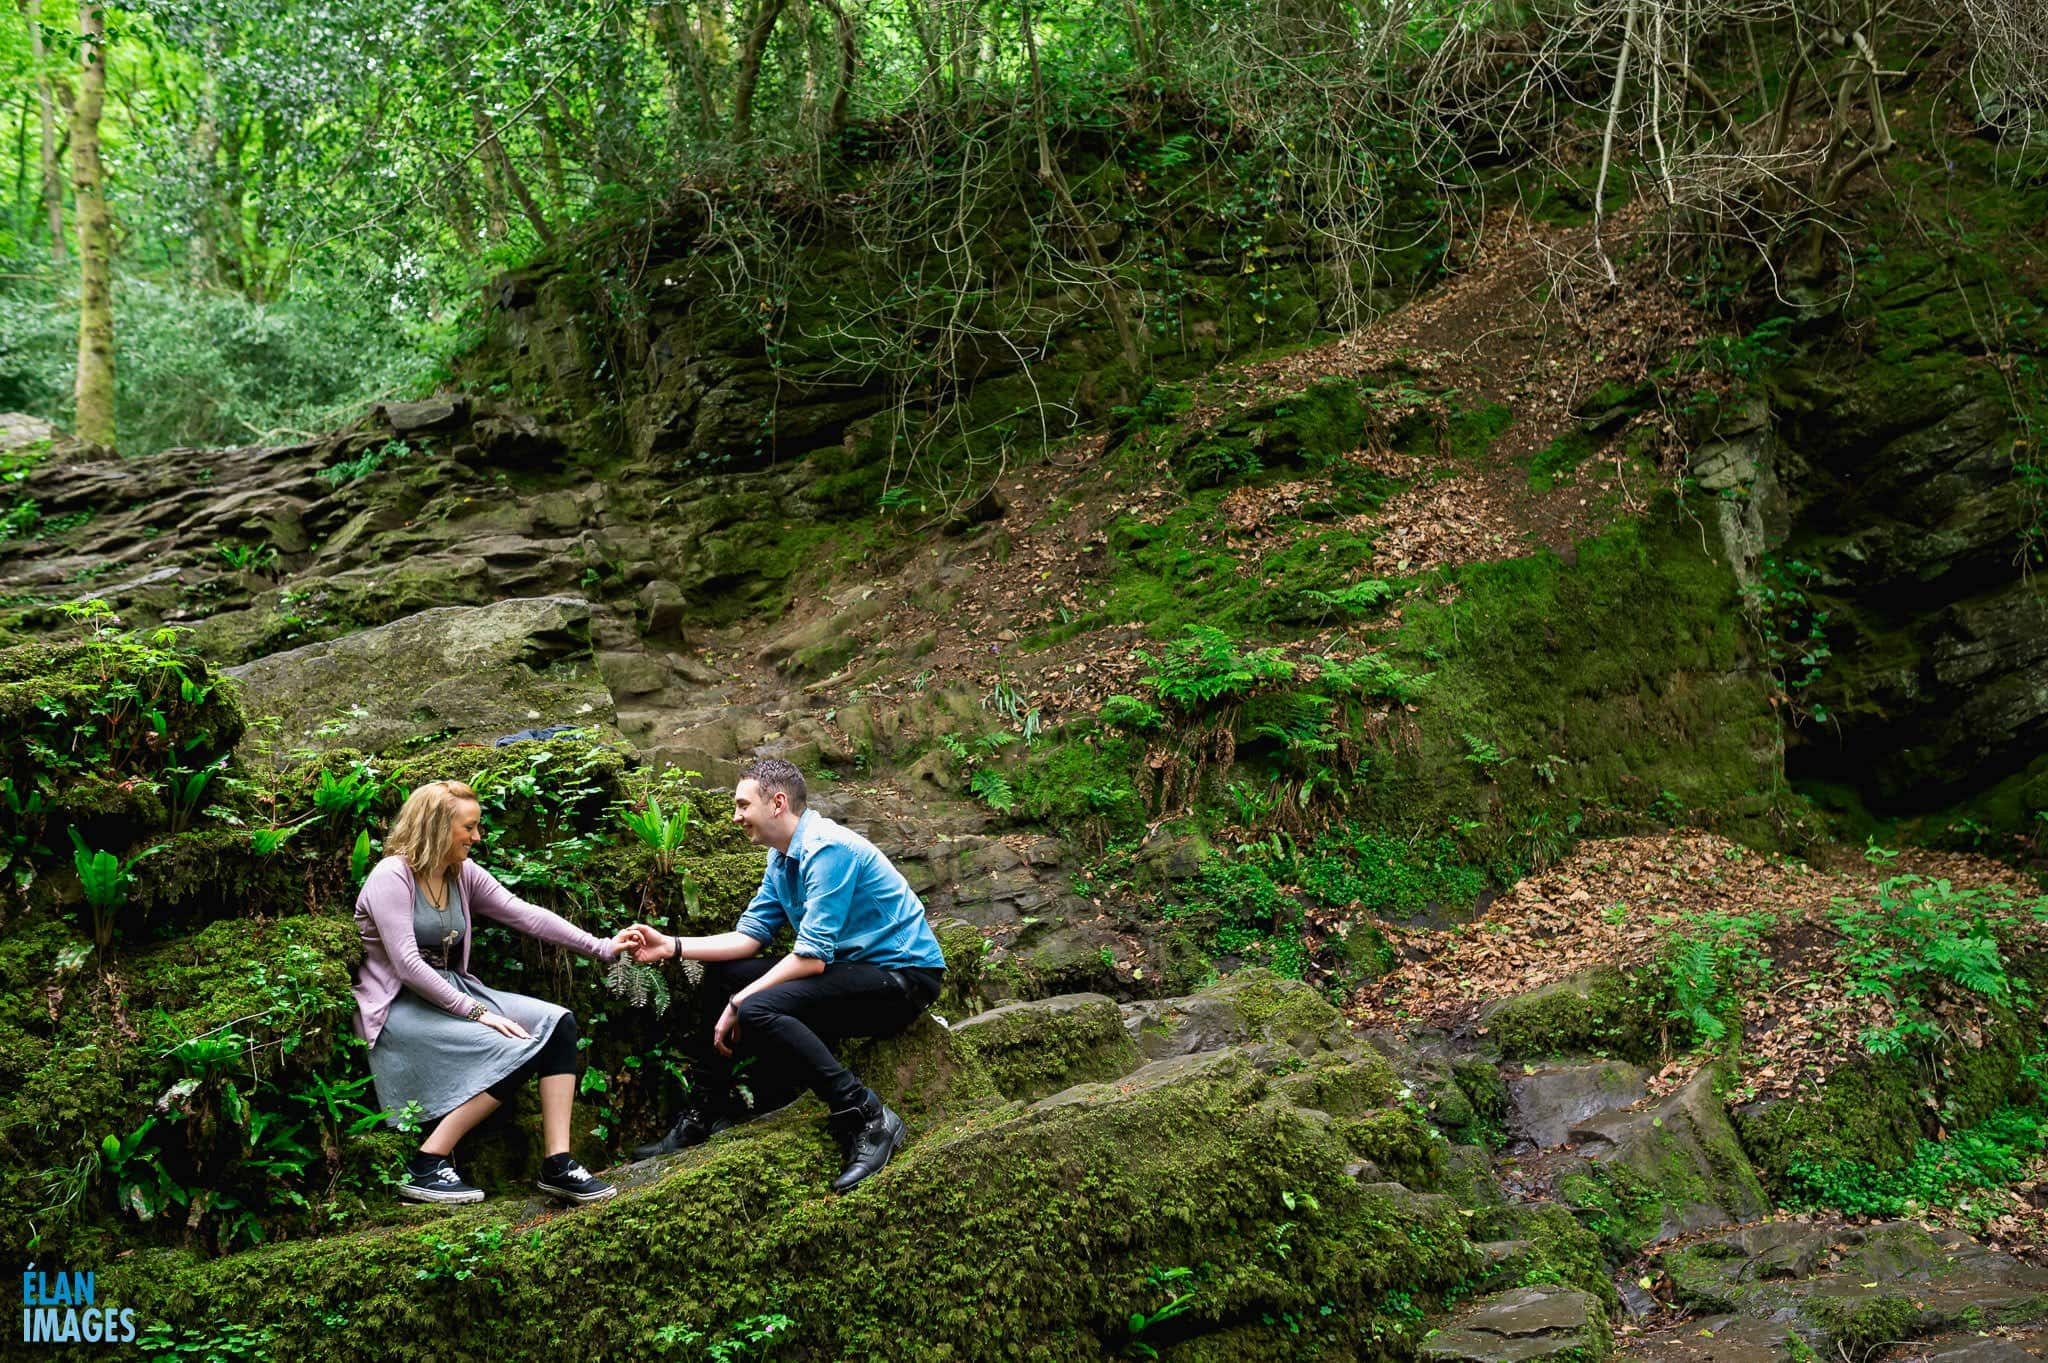 Engagement Photo Shoot in the Bluebell Woods near Bristol 57